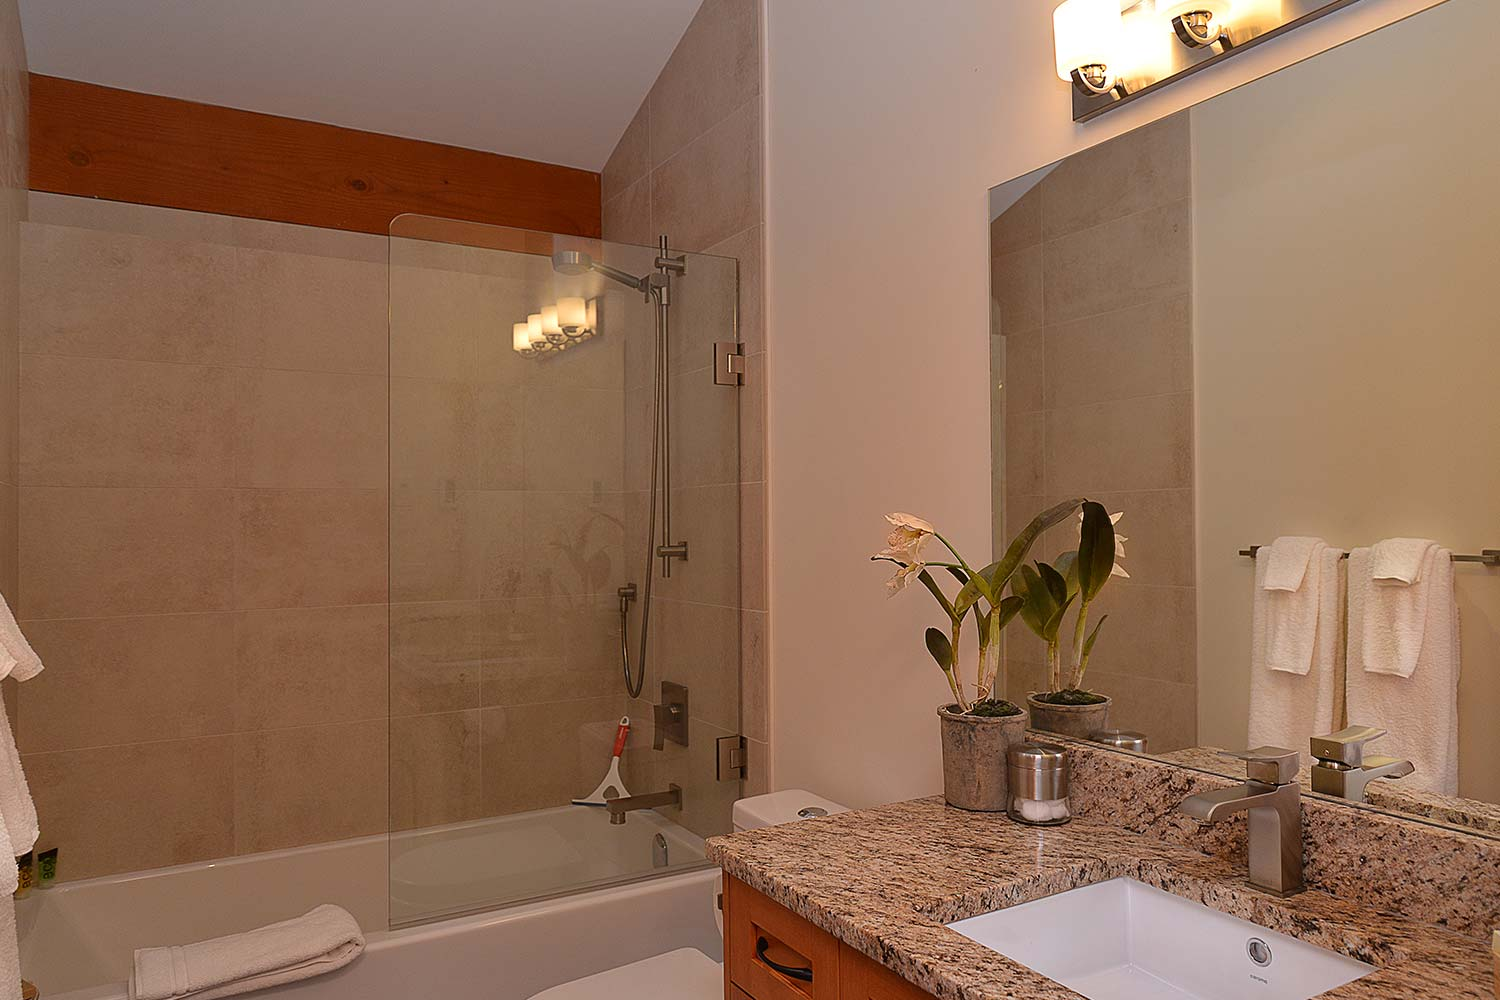 The bathroom of this home for rent by a private owner features a large shower/bath and granite-style countertop.